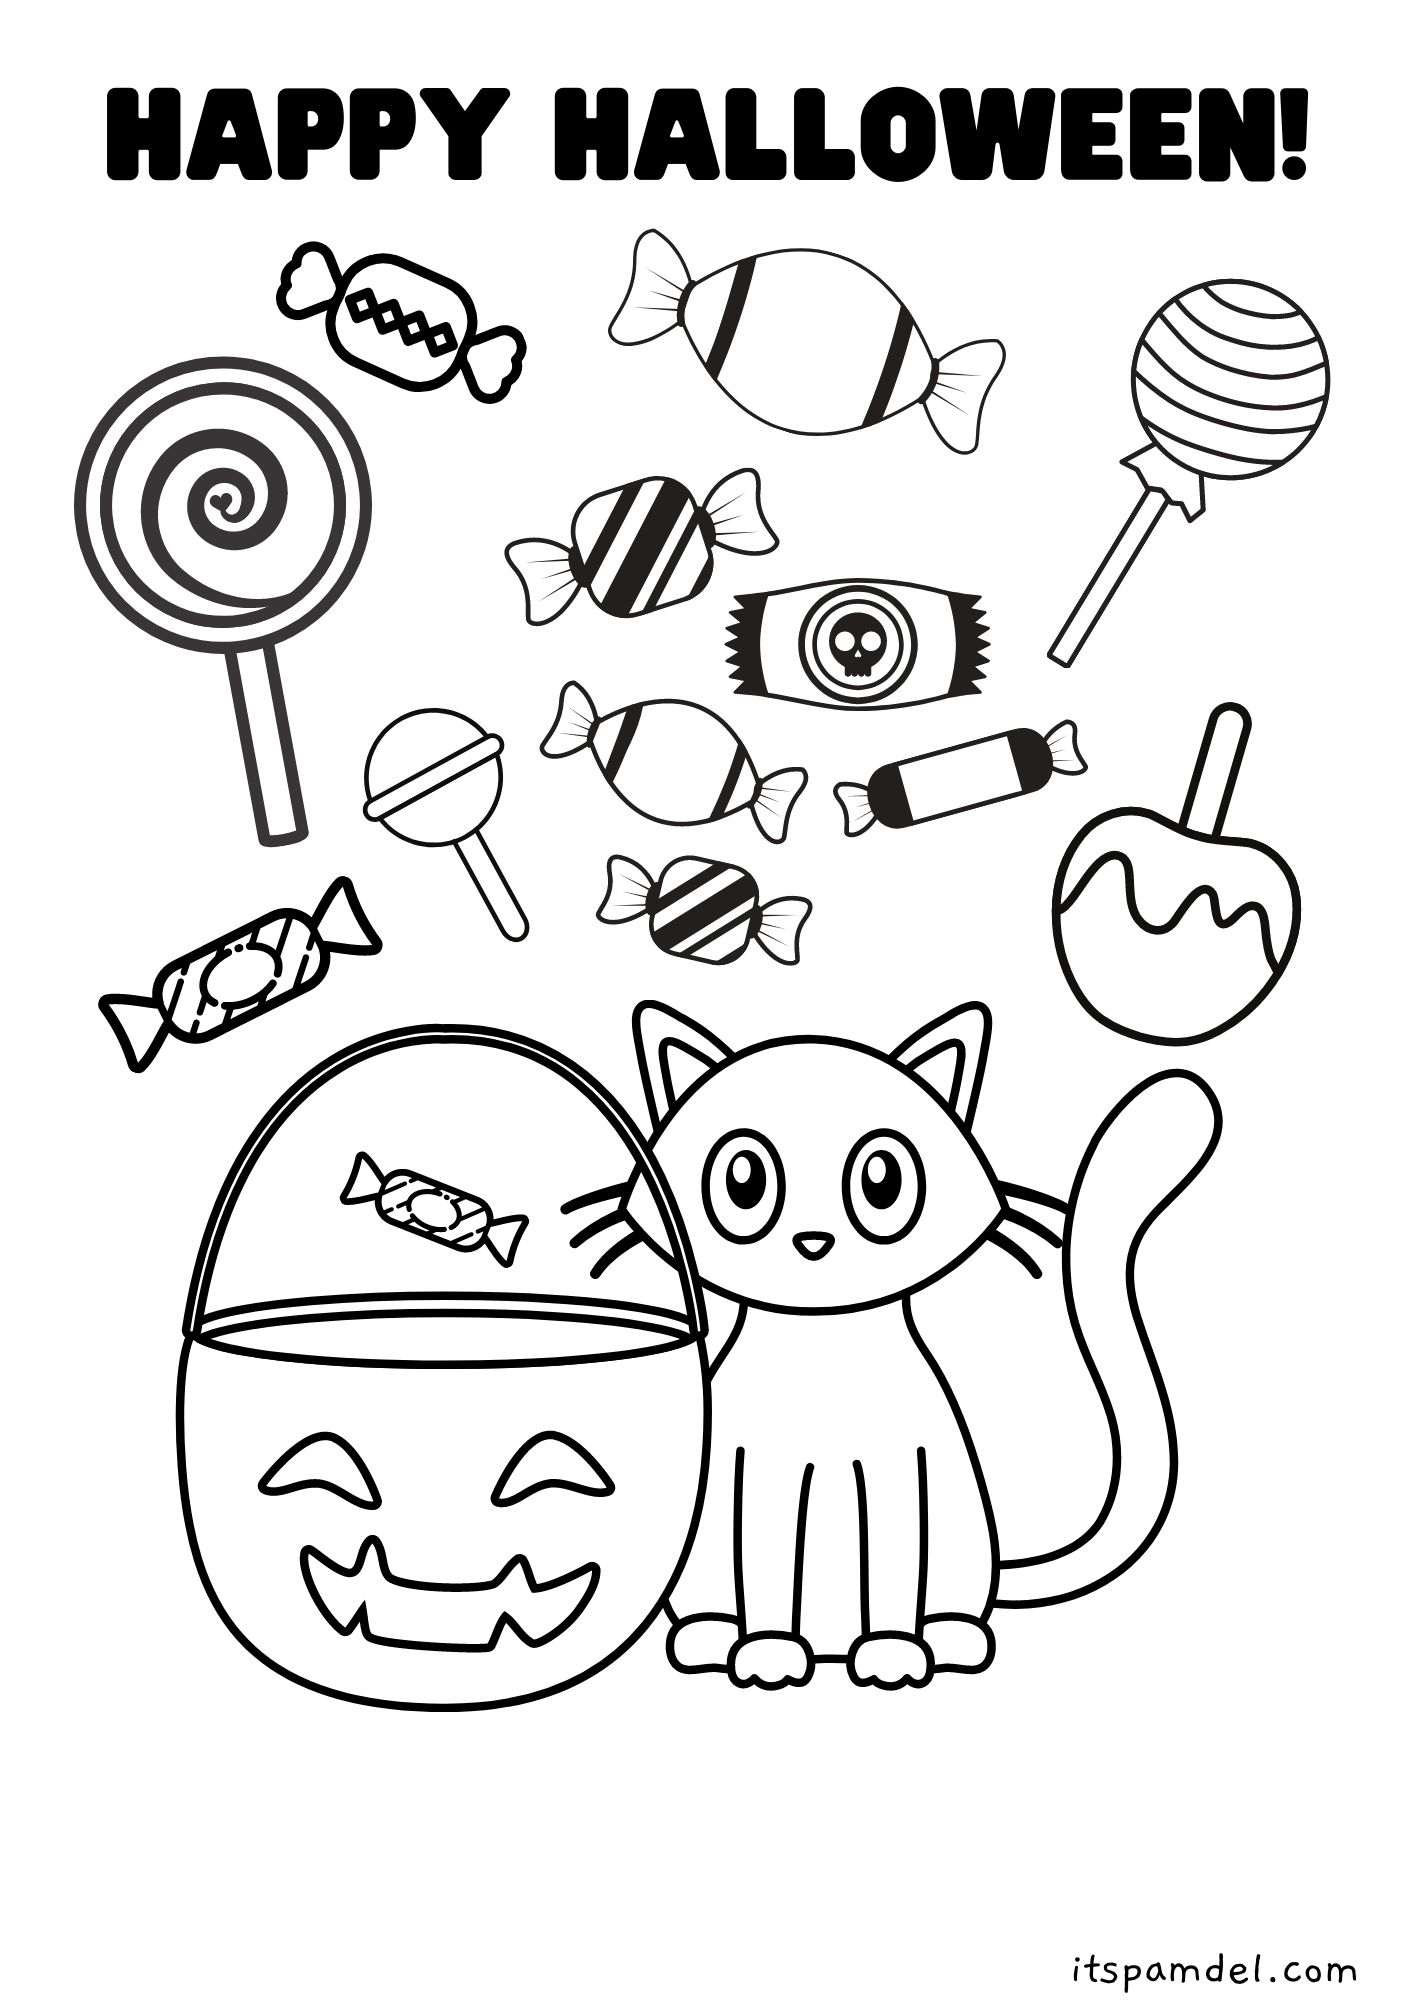 Free Printable Halloween Coloring Pages For Kids It S Pam Del